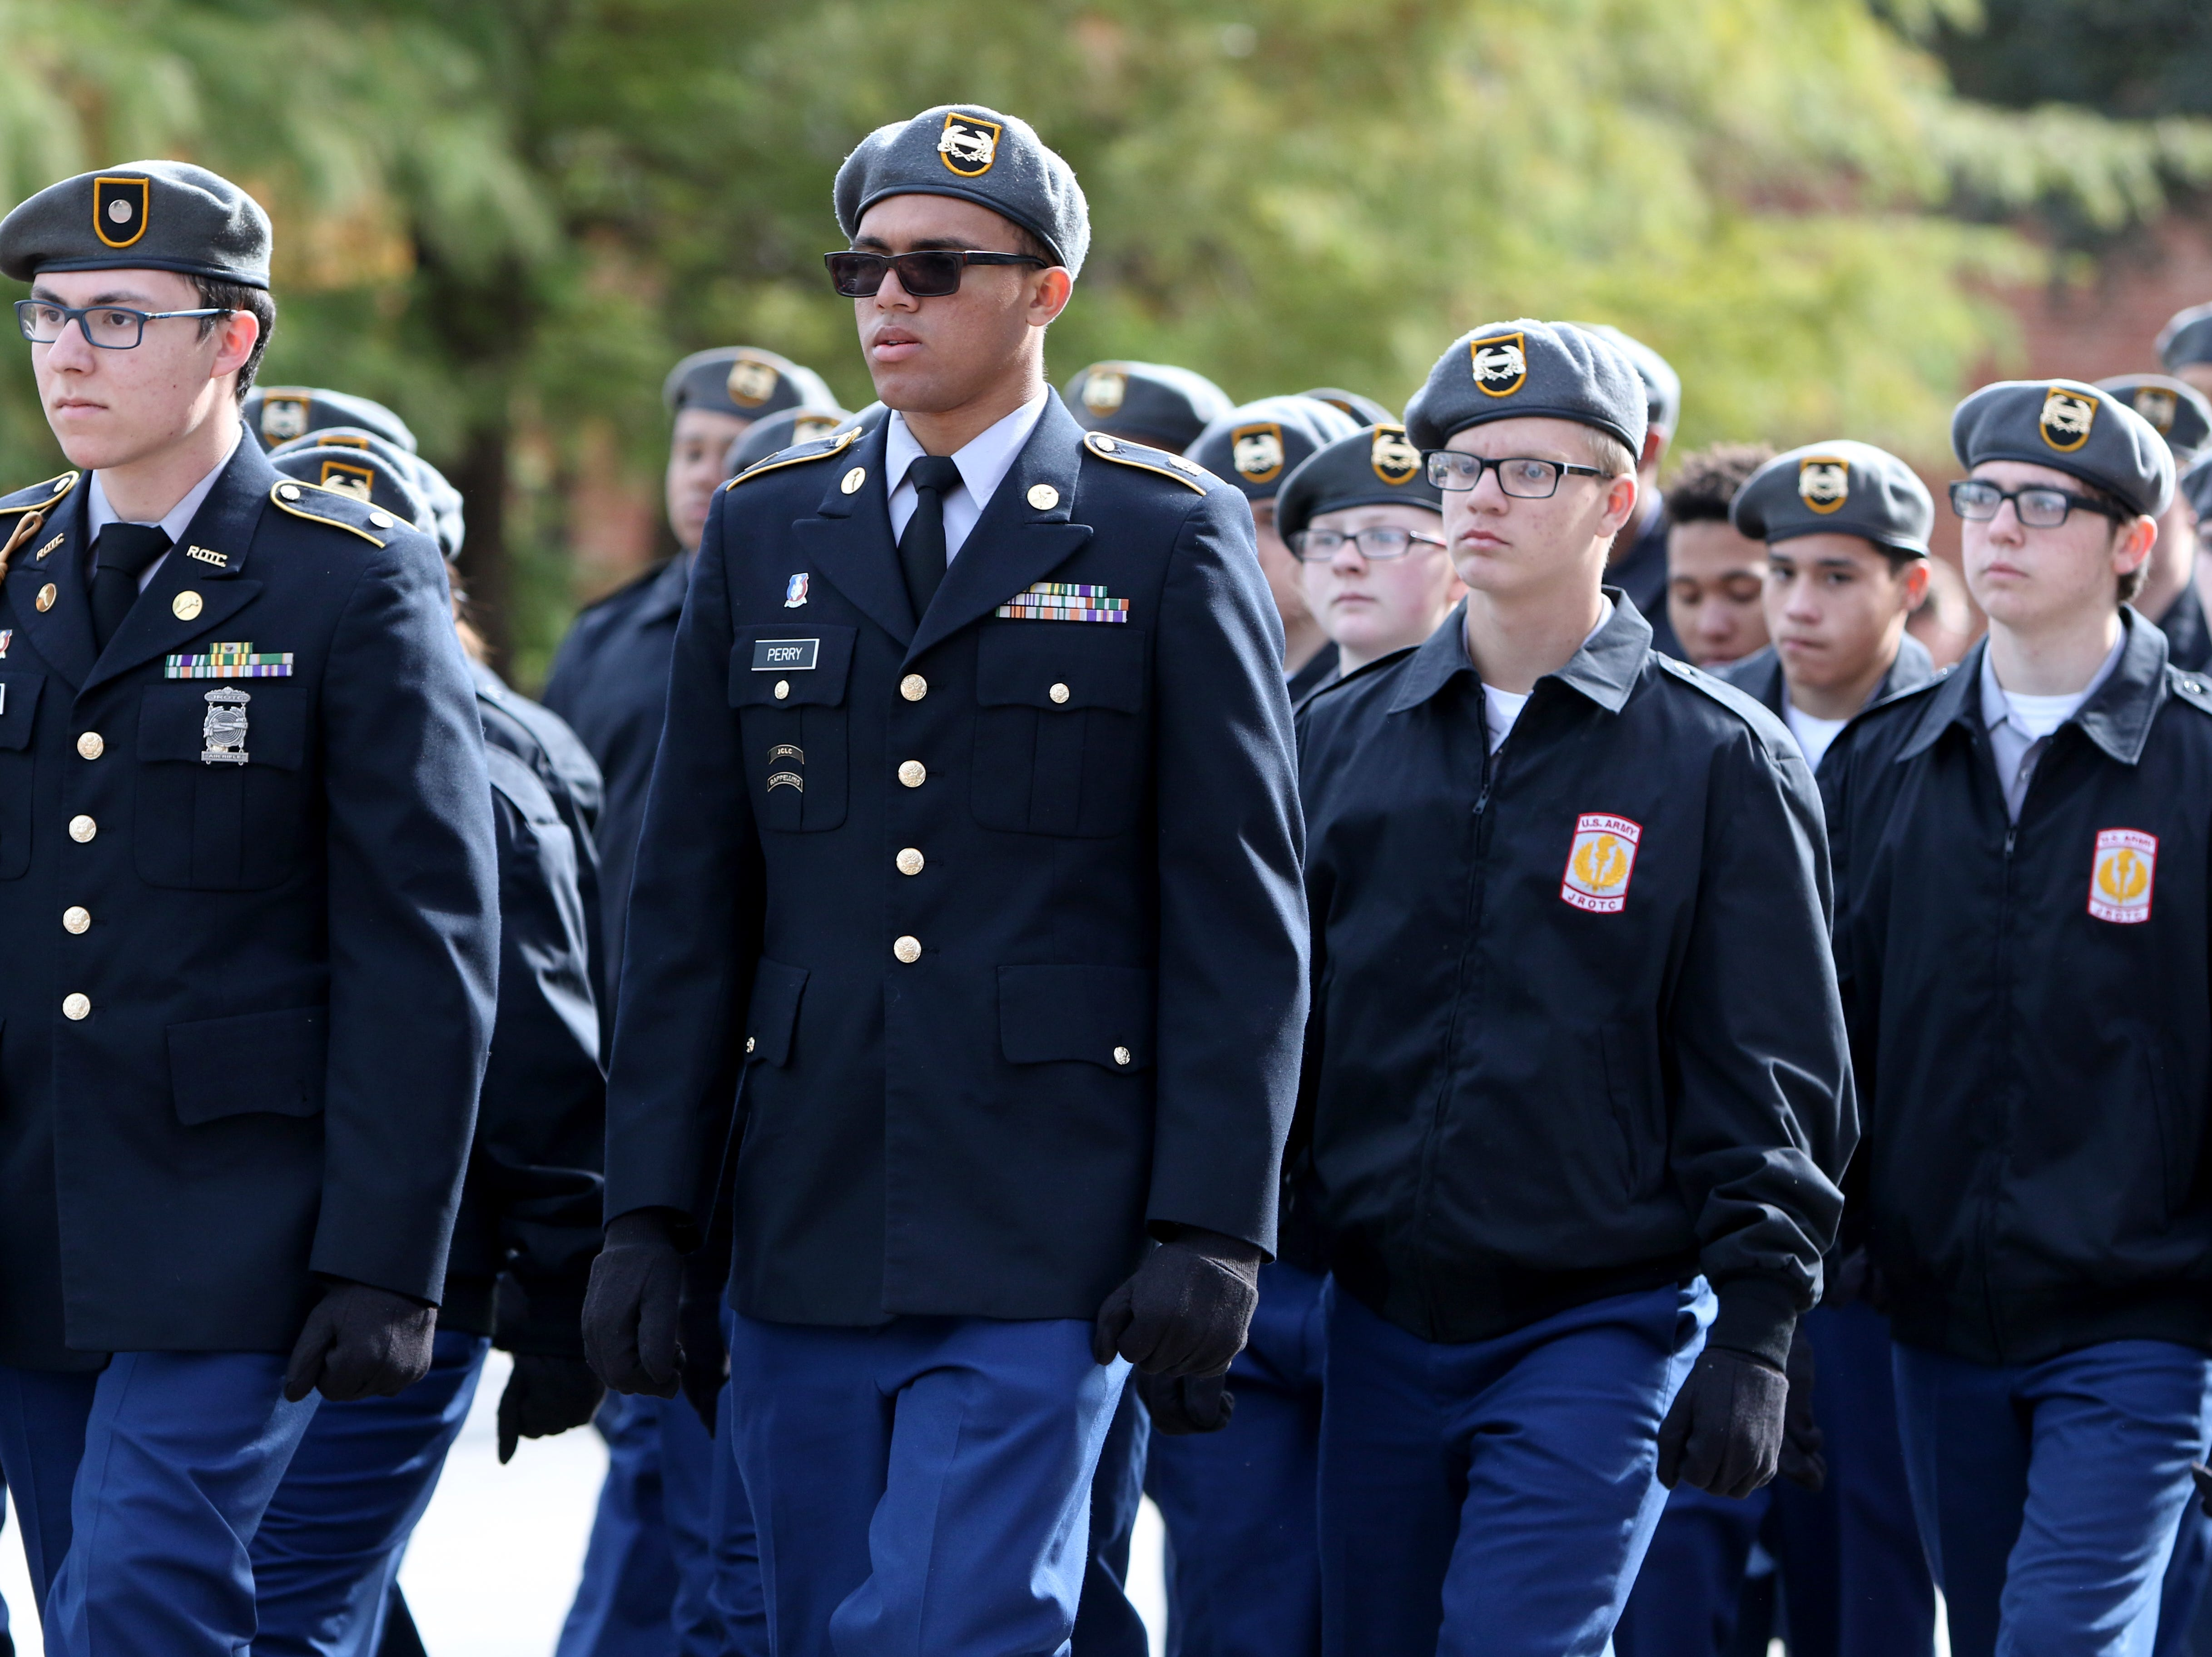 The Hirschi High School JROTC takes part in the Veterans Day parade Saturday, Nov. 10, 2018, in downtown Wichita Falls on the 100th anniversary of the Armistice of Compiègne that ended fighting in World War I.